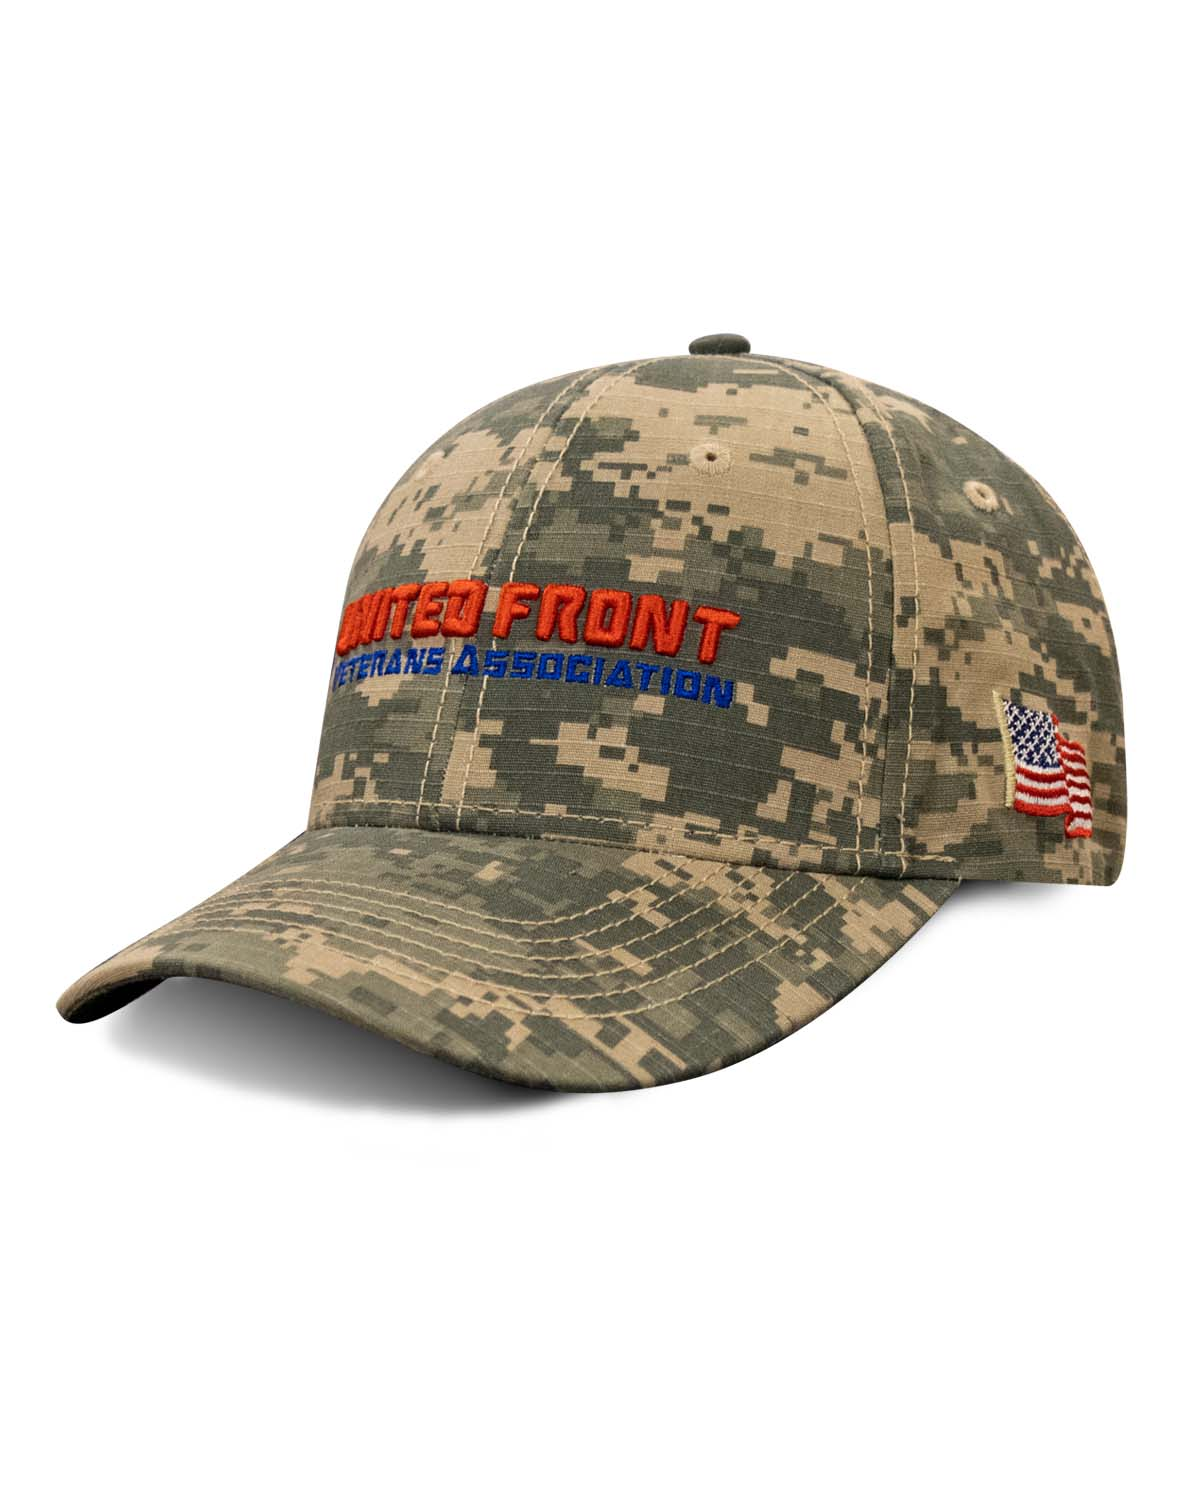 9907c97f12ef5 MX127 The Acu Digital MAX Hat custom embroidered or printed with ...